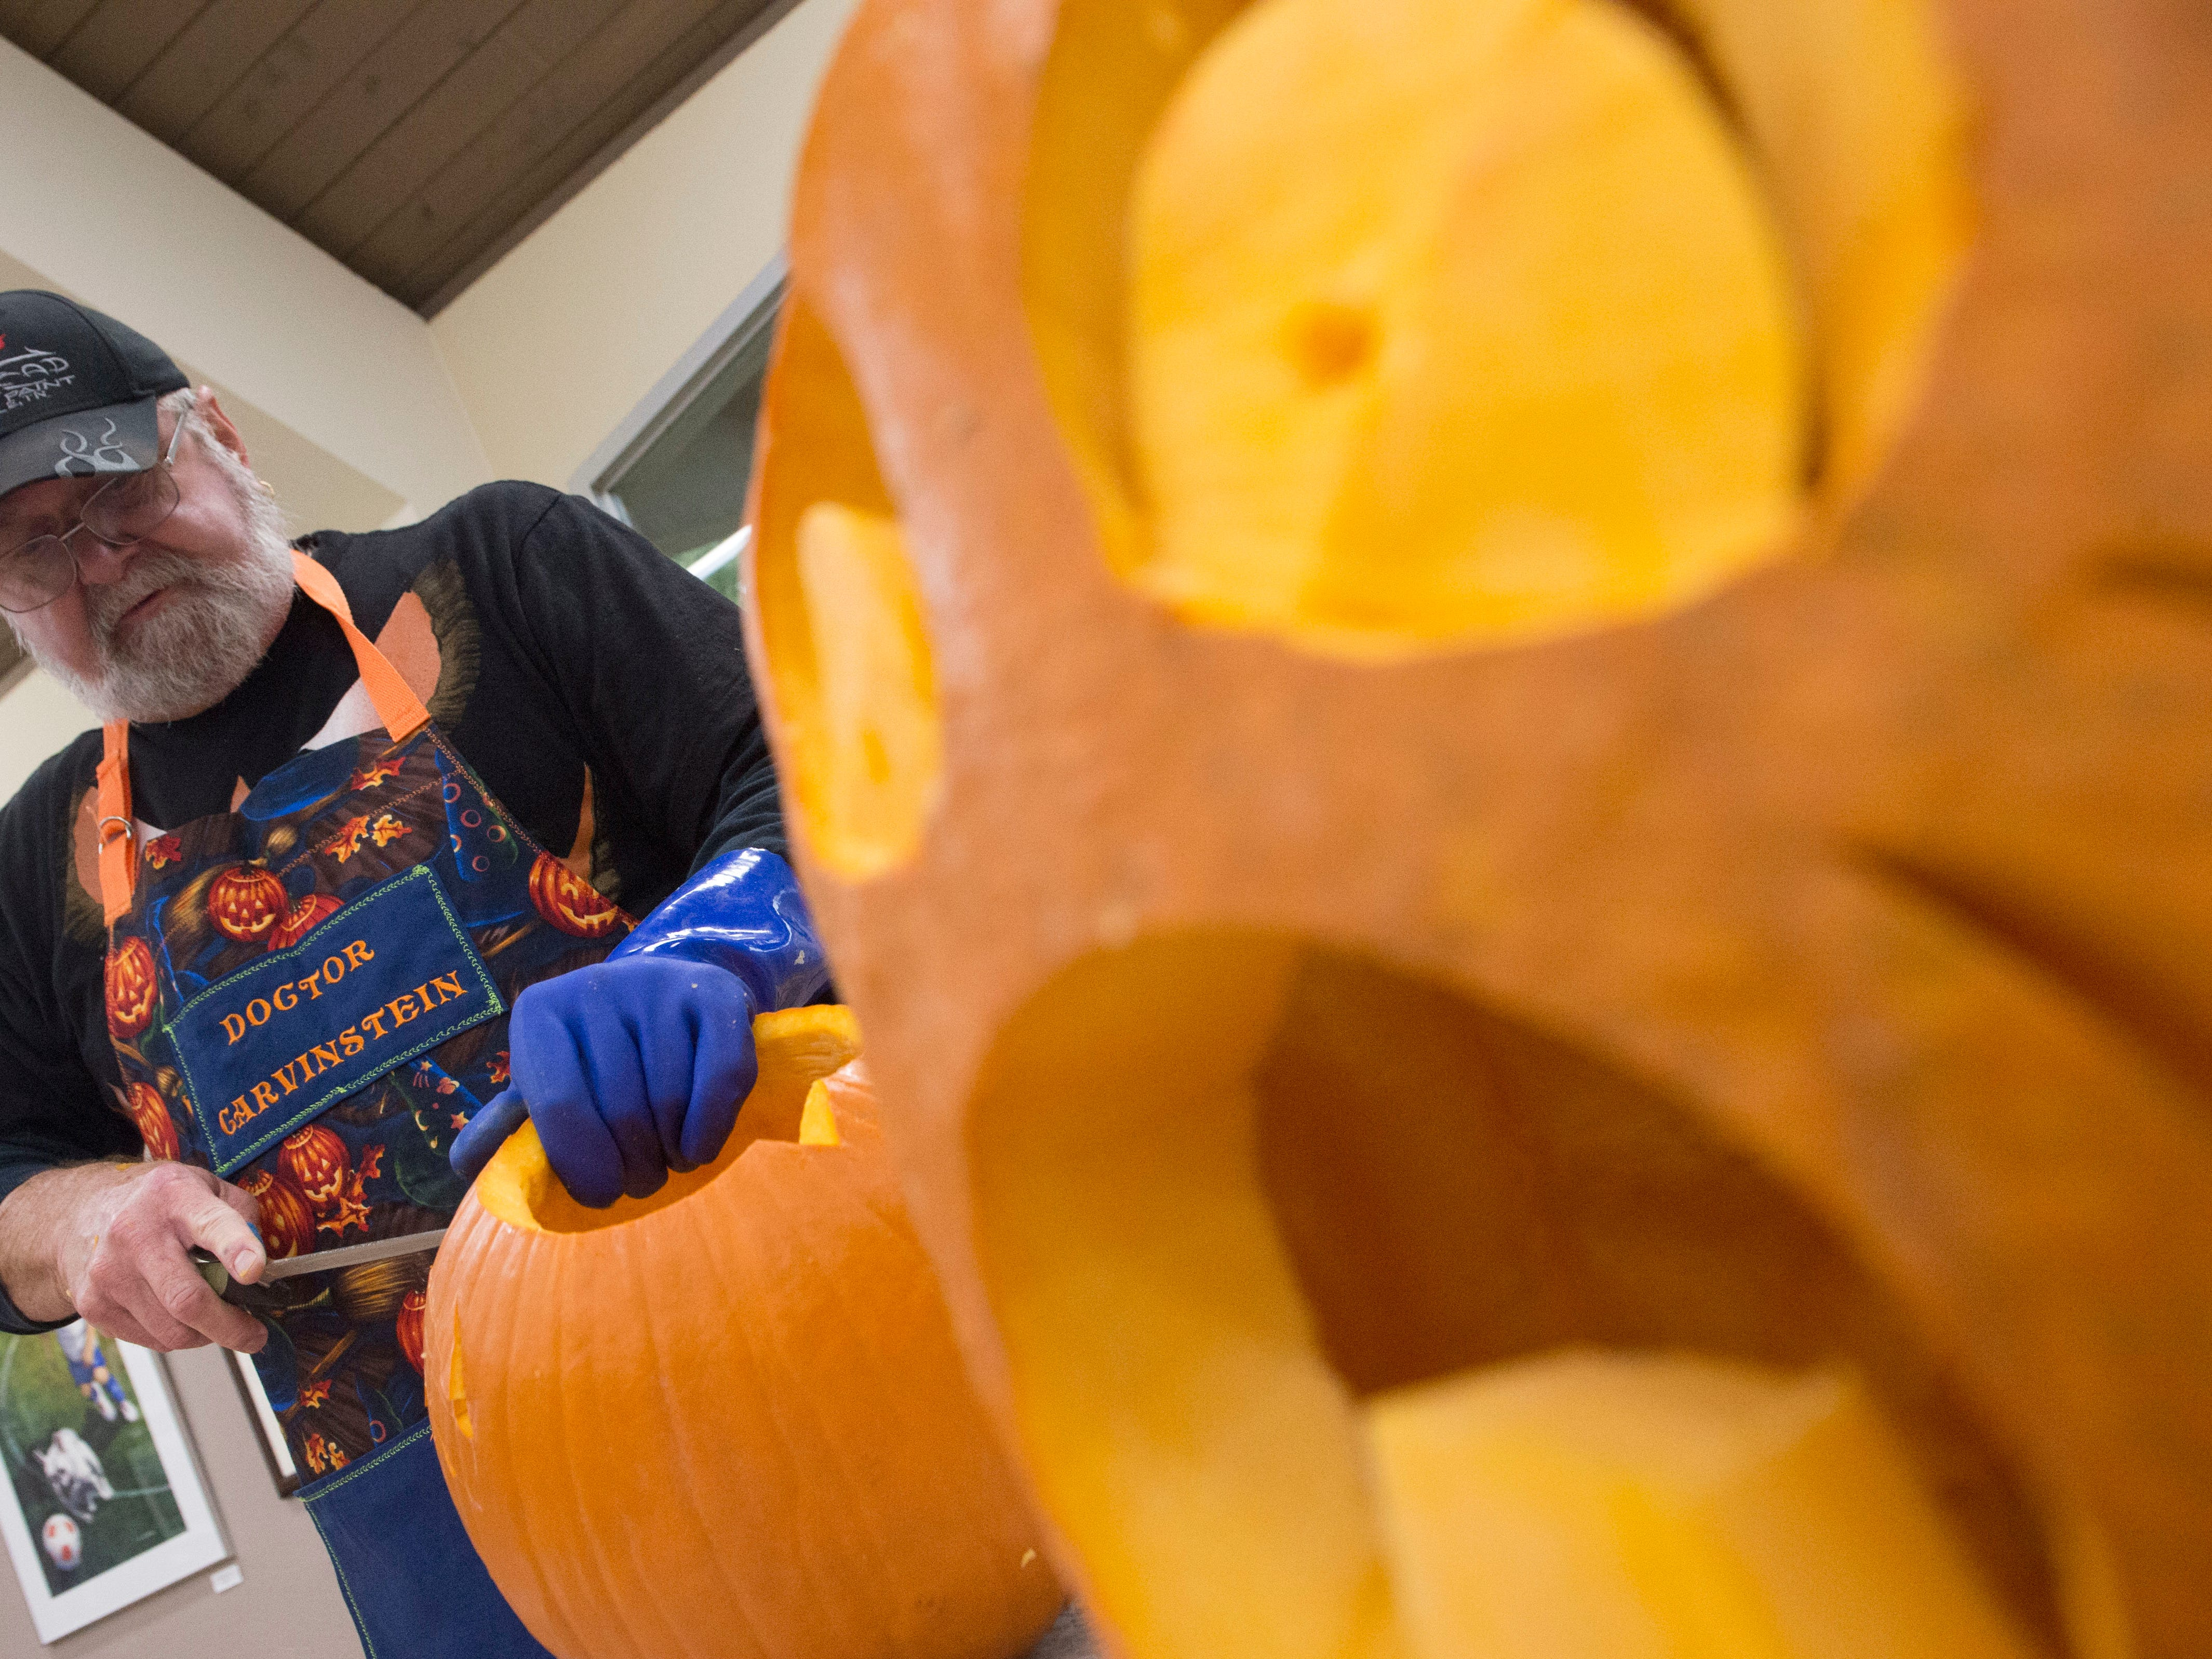 Artist Ken Clayton, also known as Dr. Carvinstein, carves pumpkins at the Fountain City Art Center, Tuesday, Oct. 16, 2018. Clayton has been carving for over 50 years.